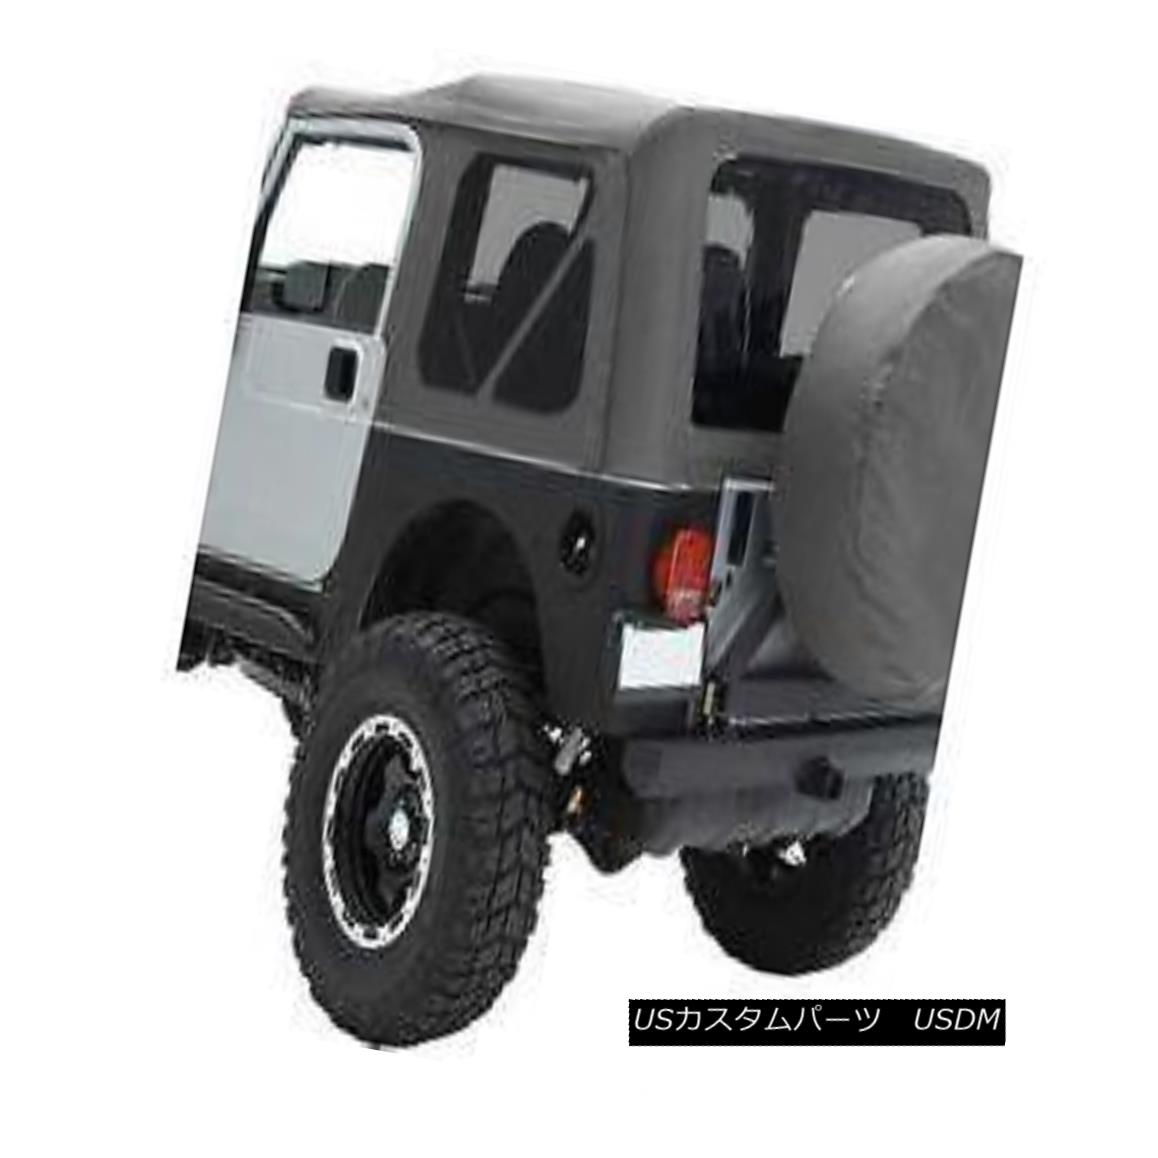 NEW JEEP YJ WRANGLER REPLACEMENT SOFT TOP SPREADER BAR 1988-1995